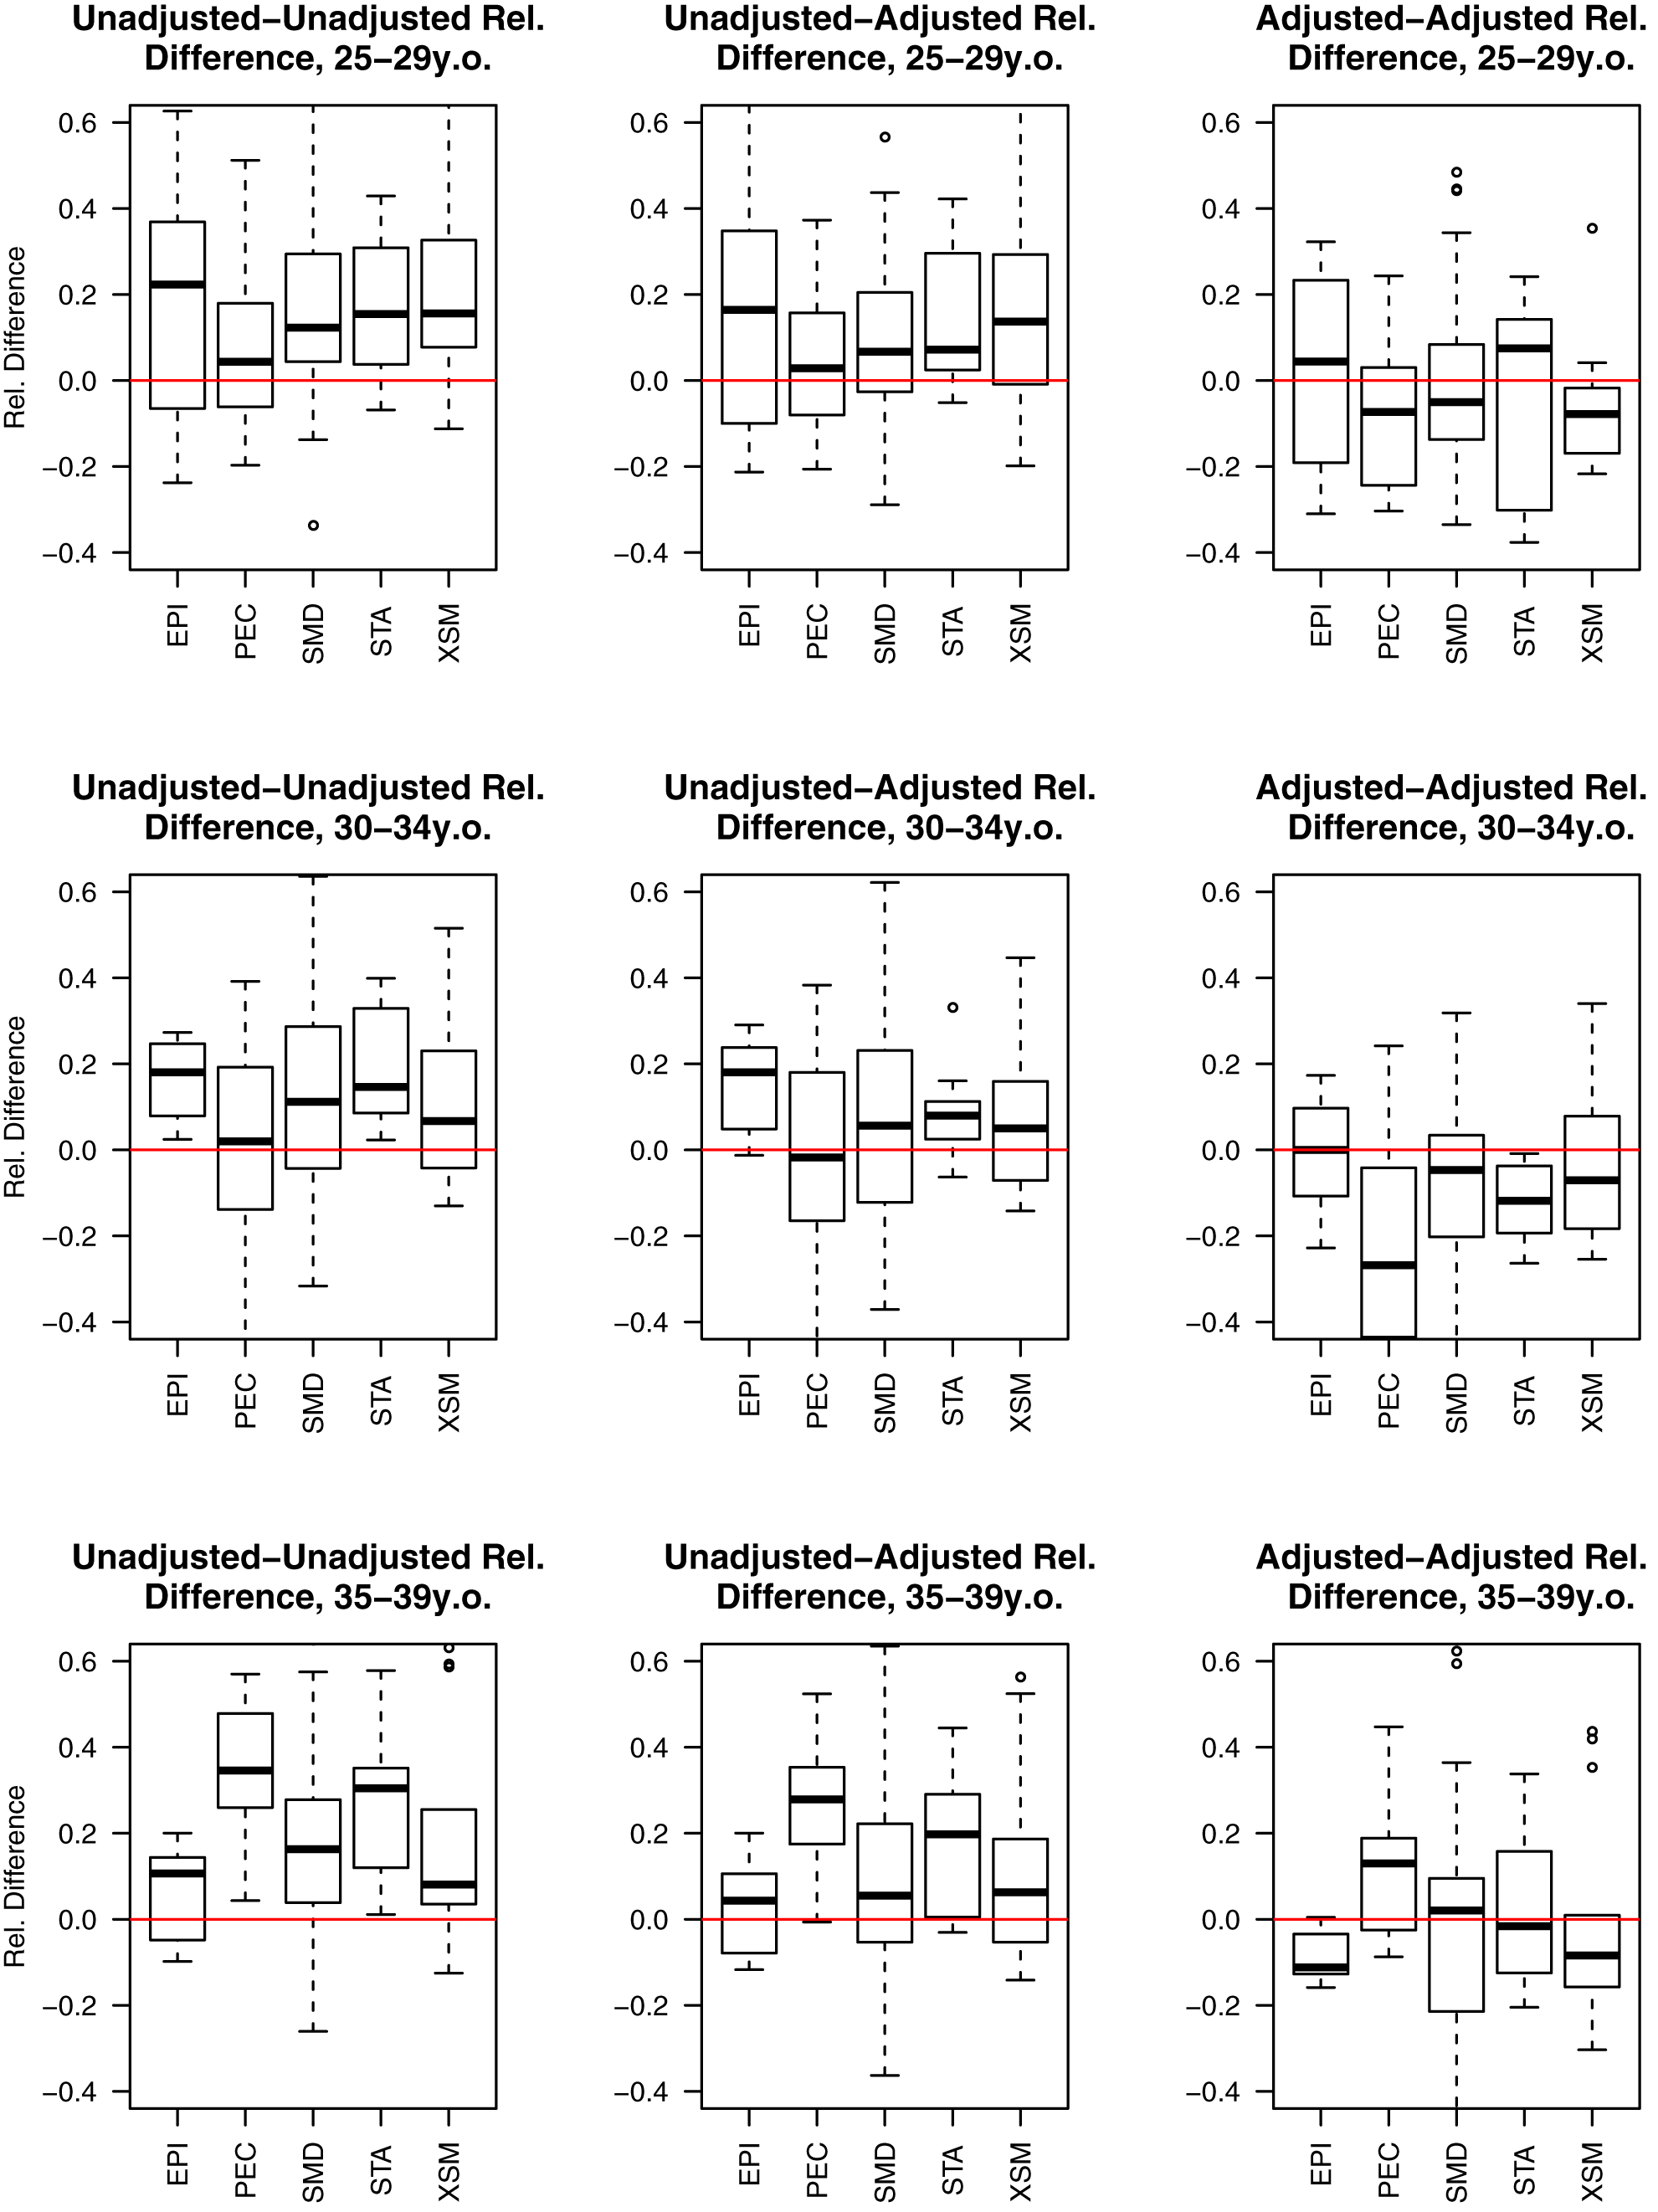 """Estimated relative paired differences for under-five mortality rates for developing countries organized by Garenne and Gakusi <em class=""""ref"""">[<b>14</b>]</em> categories."""